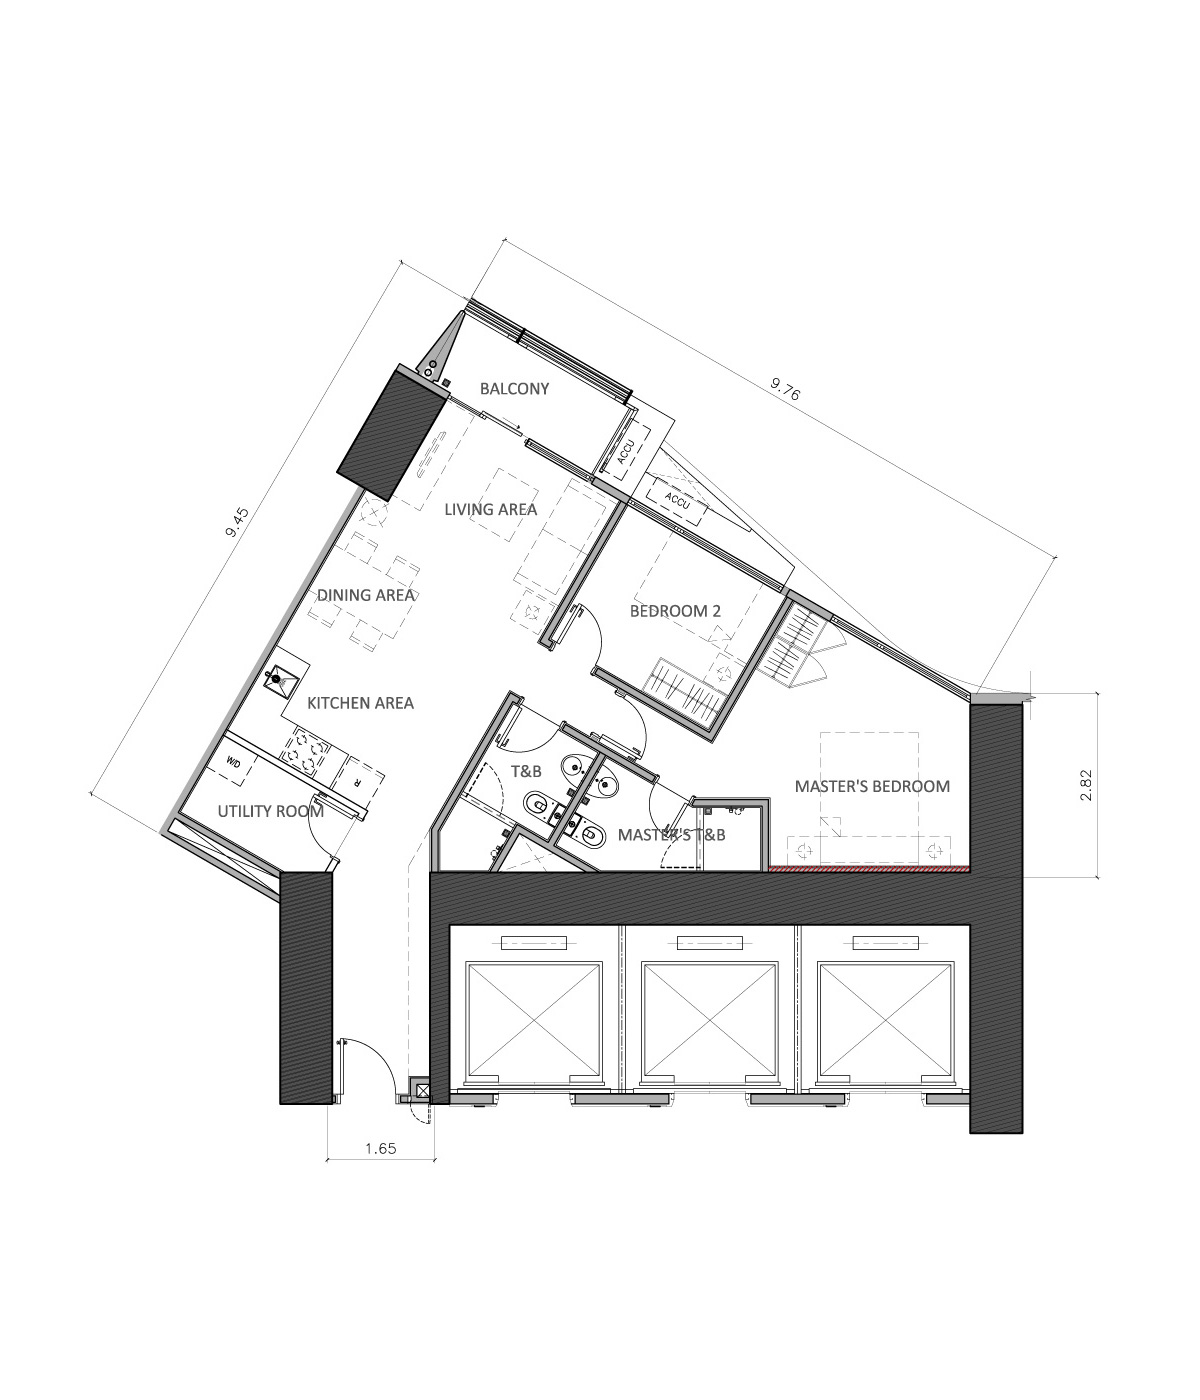 3 Bedroom Unit Floor Plans